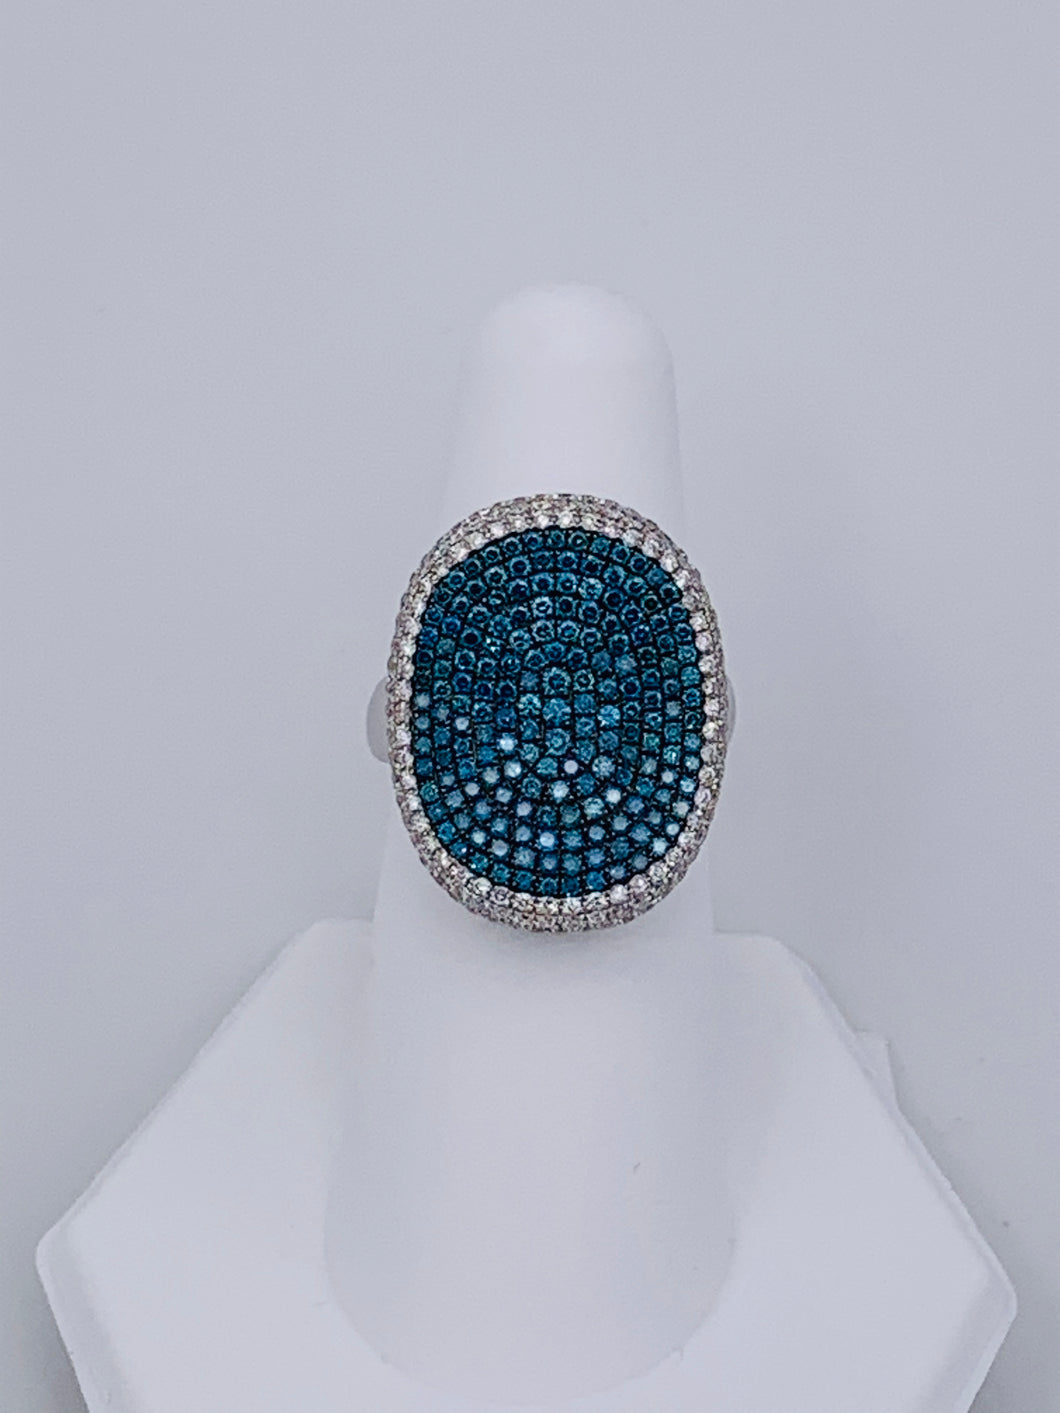 18 Karat White Gold Concave Blue and White Diamond Ring